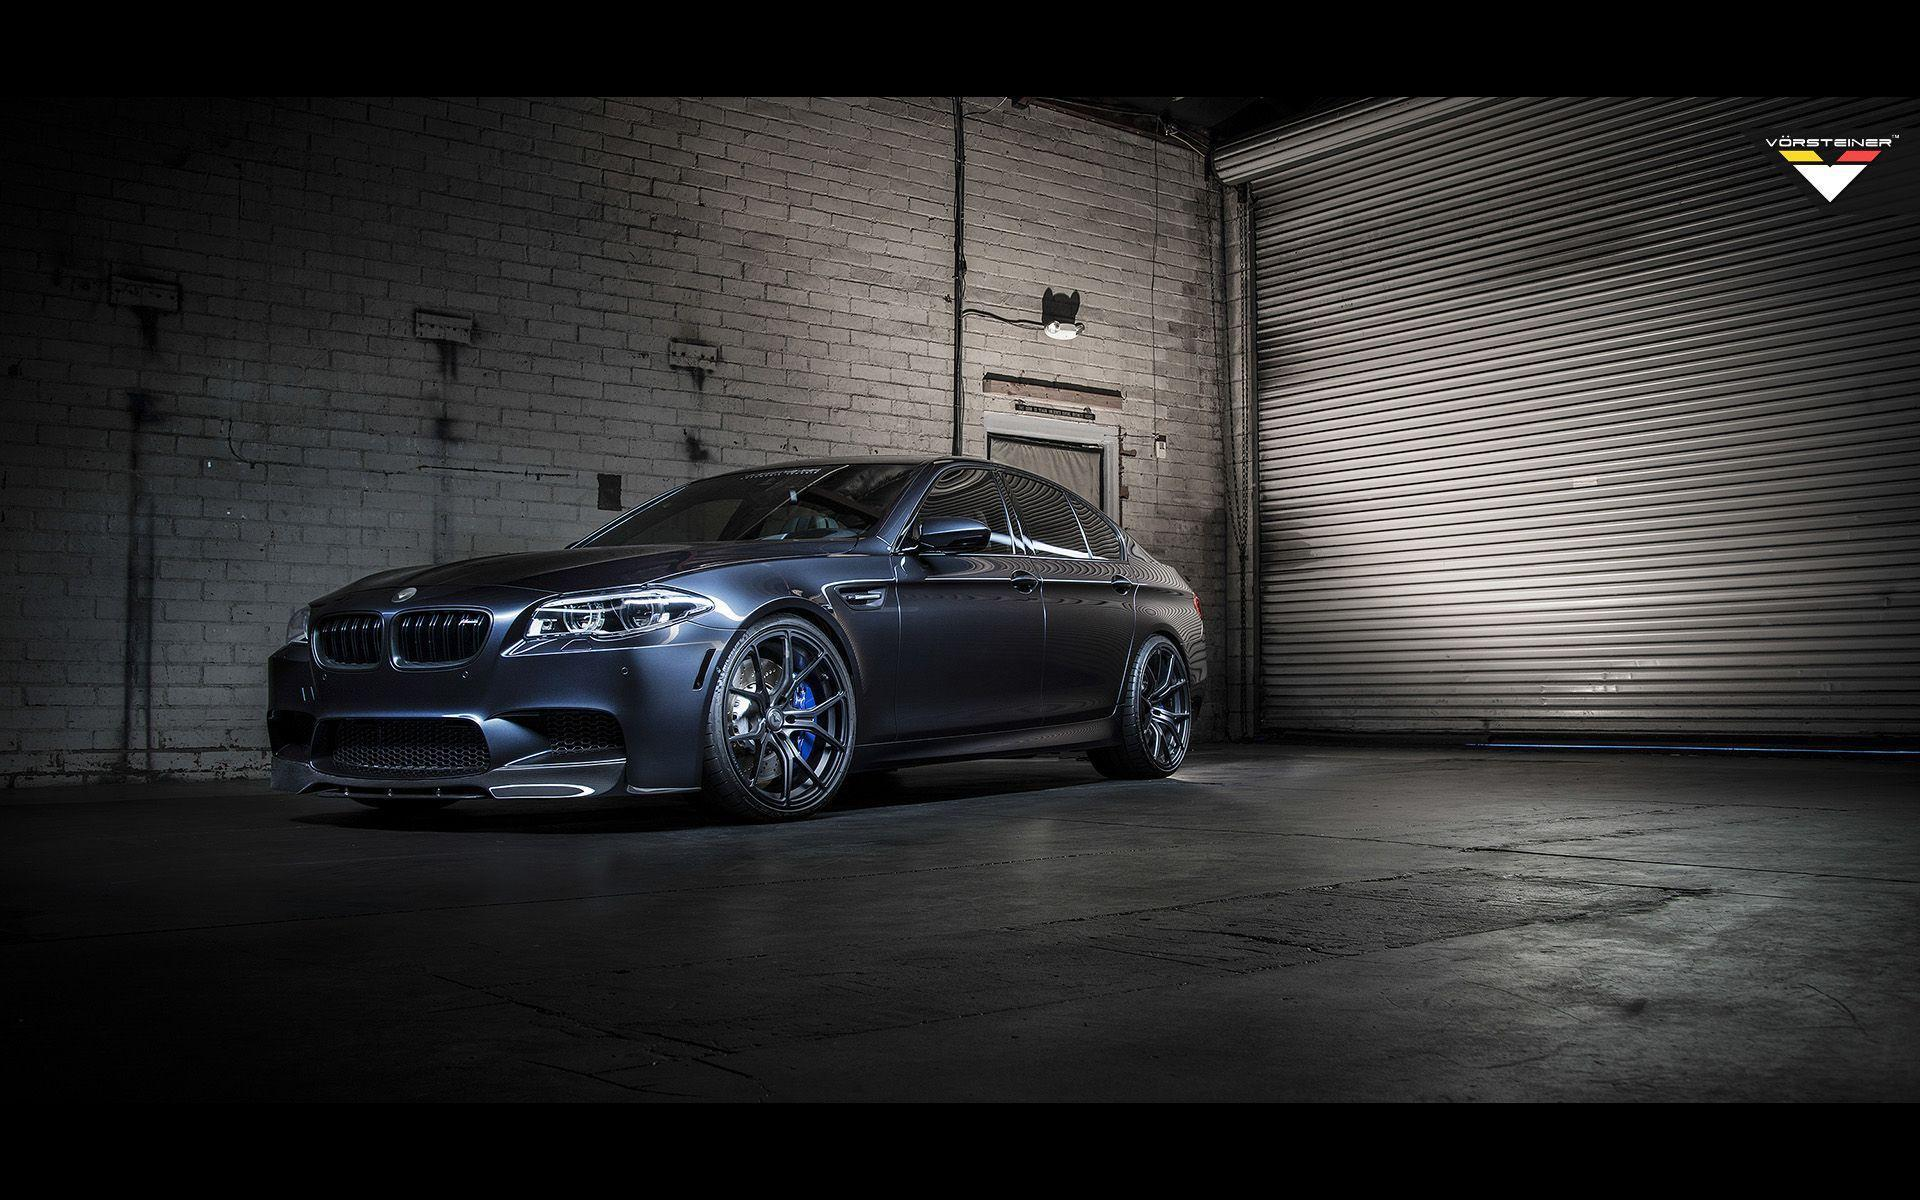 BMW M5 Wallpapers, Pictures, Images |Bmw M5 2014 Wallpaper Hd